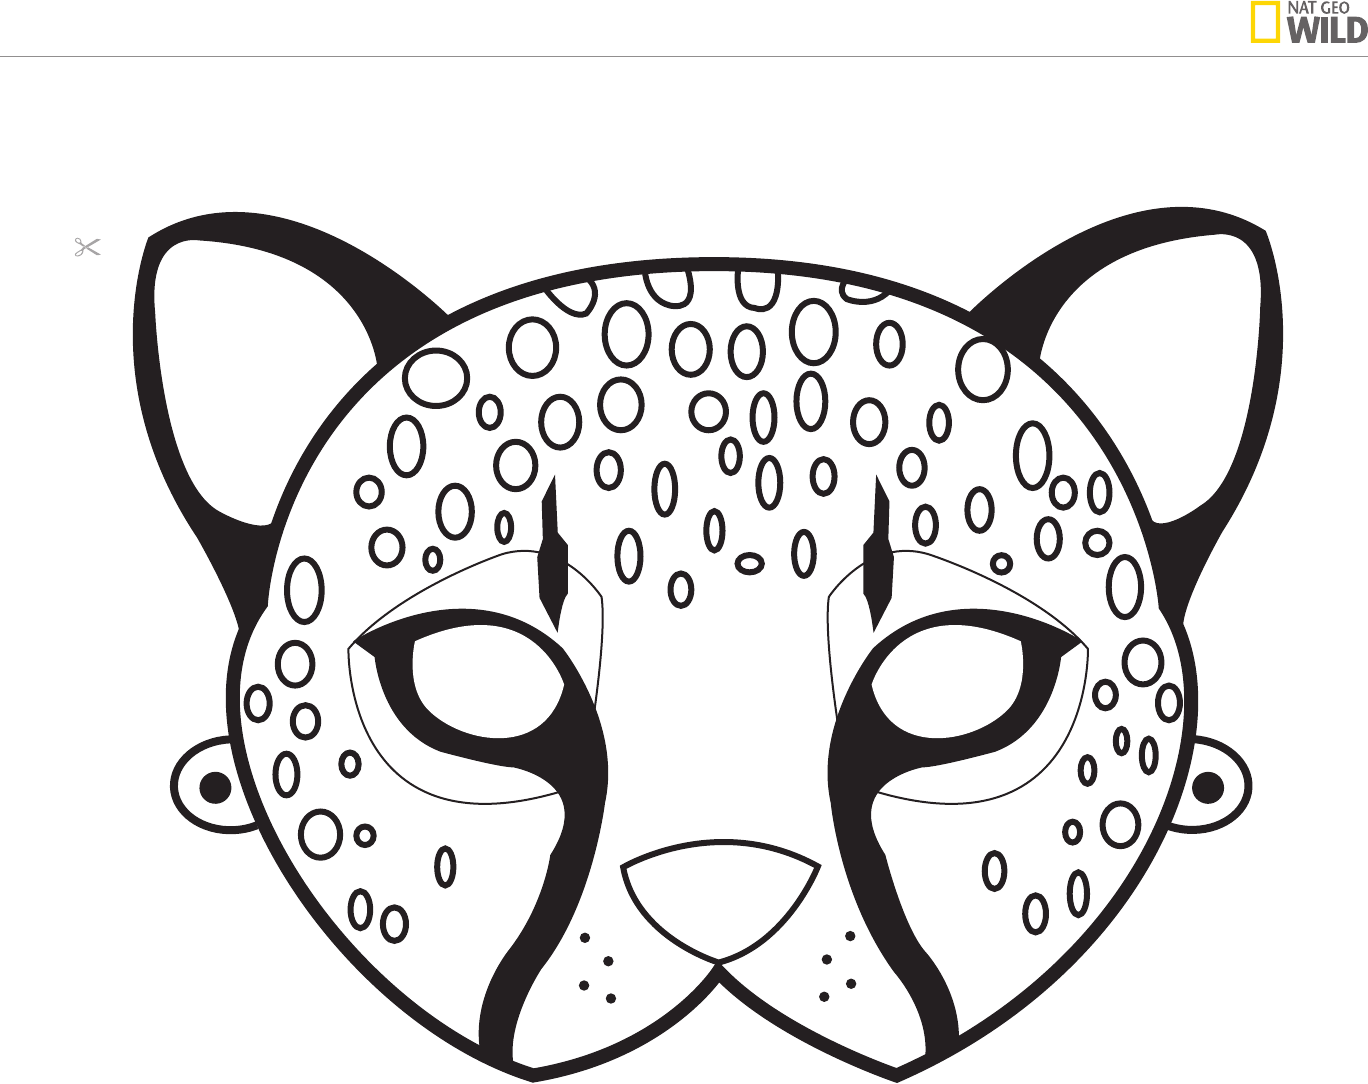 Cheetah clipart mask, Cheetah mask Transparent FREE for